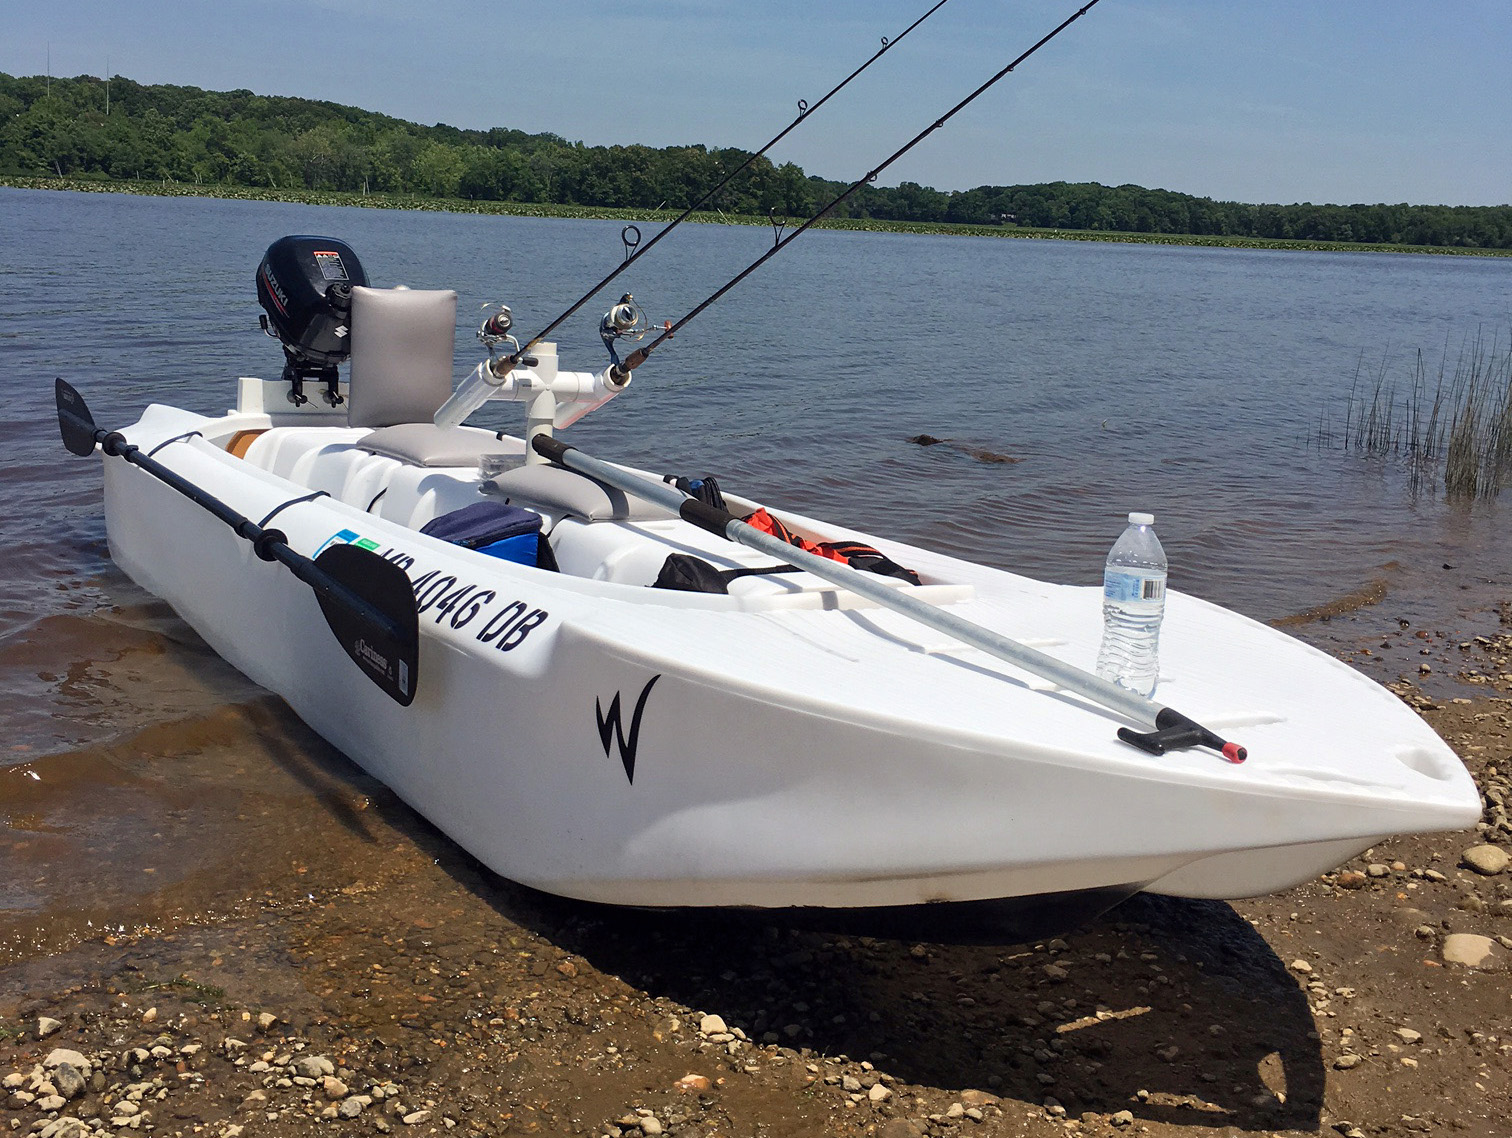 Wavewalk S4 skiff, Maryland